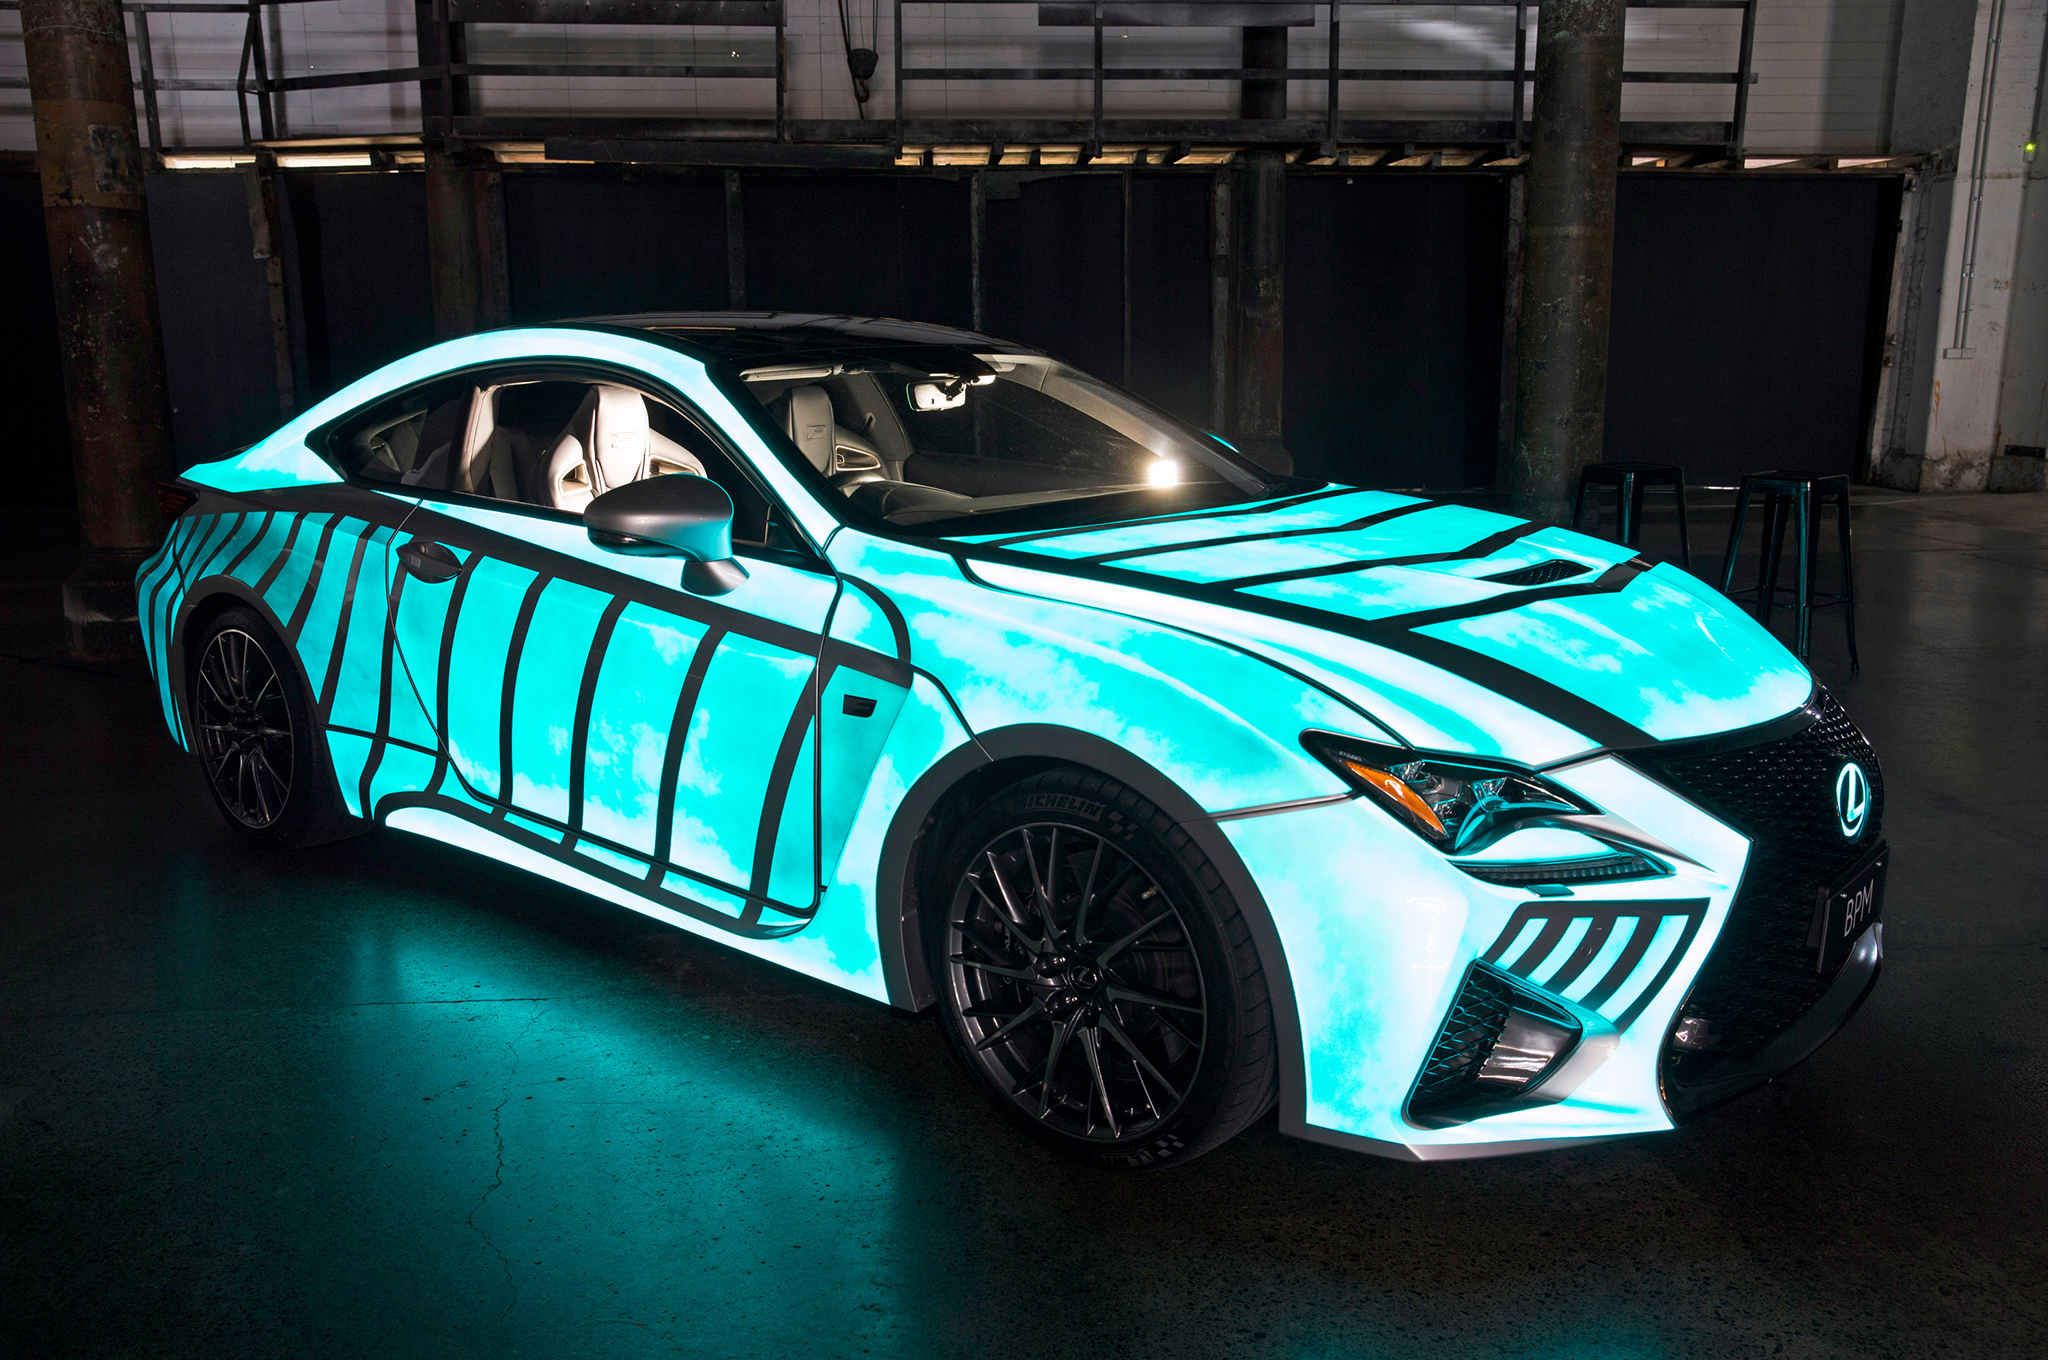 Watch A 2015 Lexus Rc F Light Up In Time With The Driver S Pulse